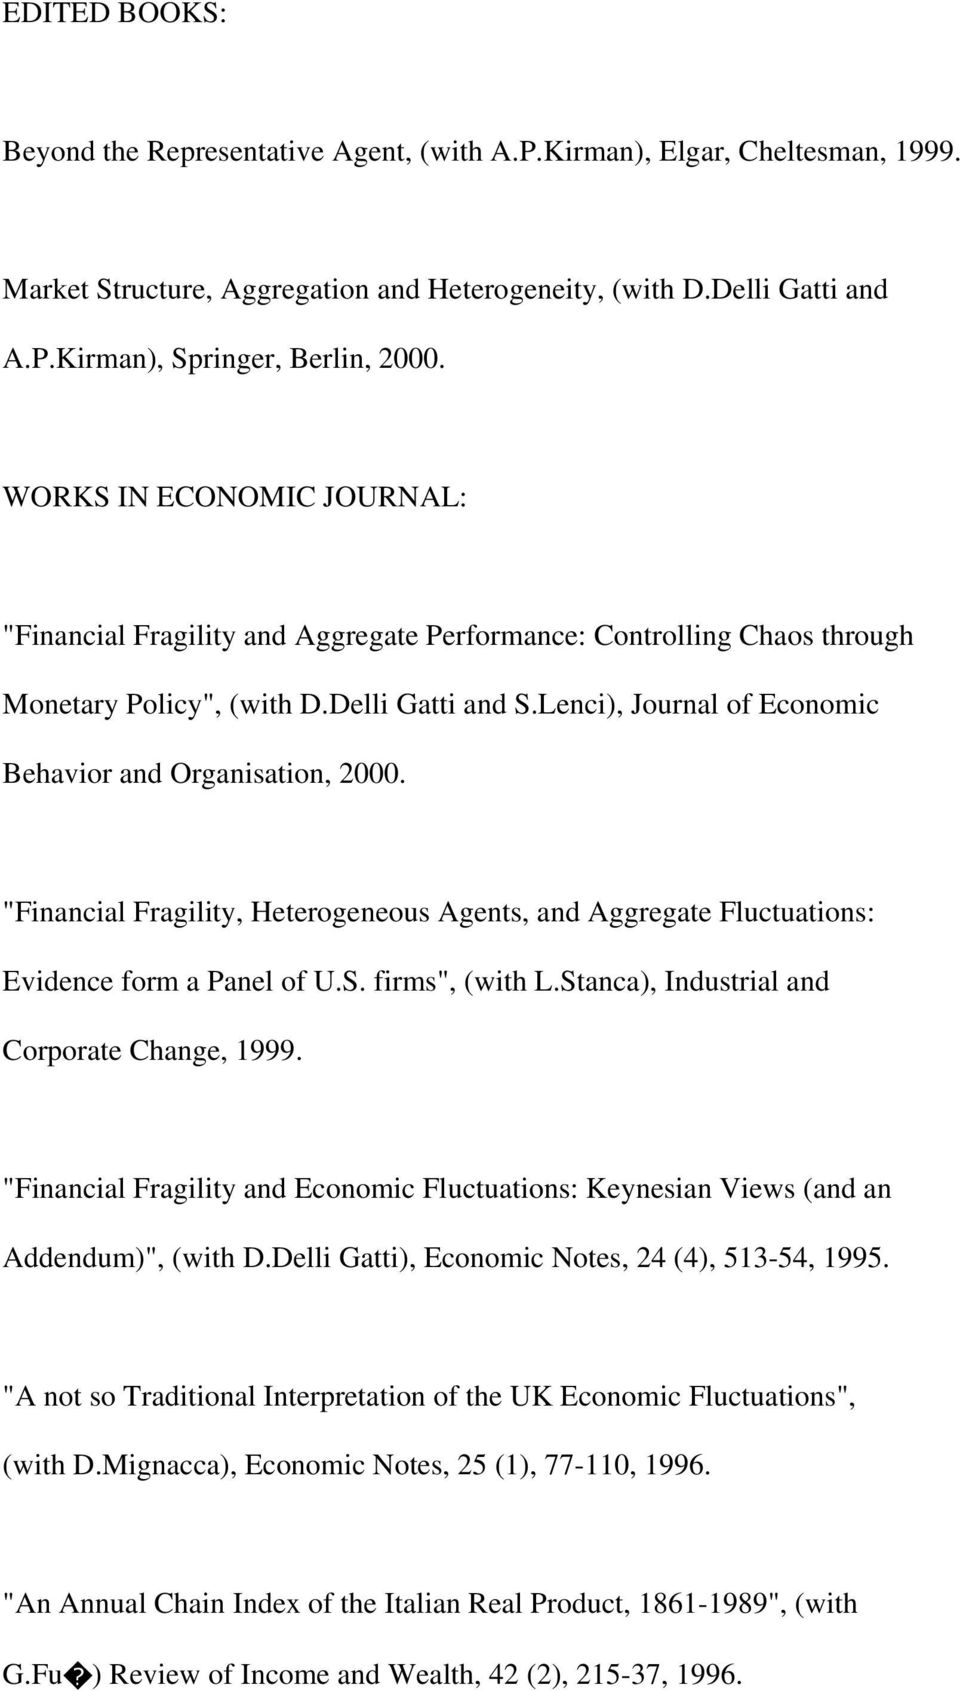 "Lenci), Journal of Economic Behavior and Organisation, 2000. ""Financial Fragility, Heterogeneous Agents, and Aggregate Fluctuations: Evidence form a Panel of U.S. firms"", (with L."